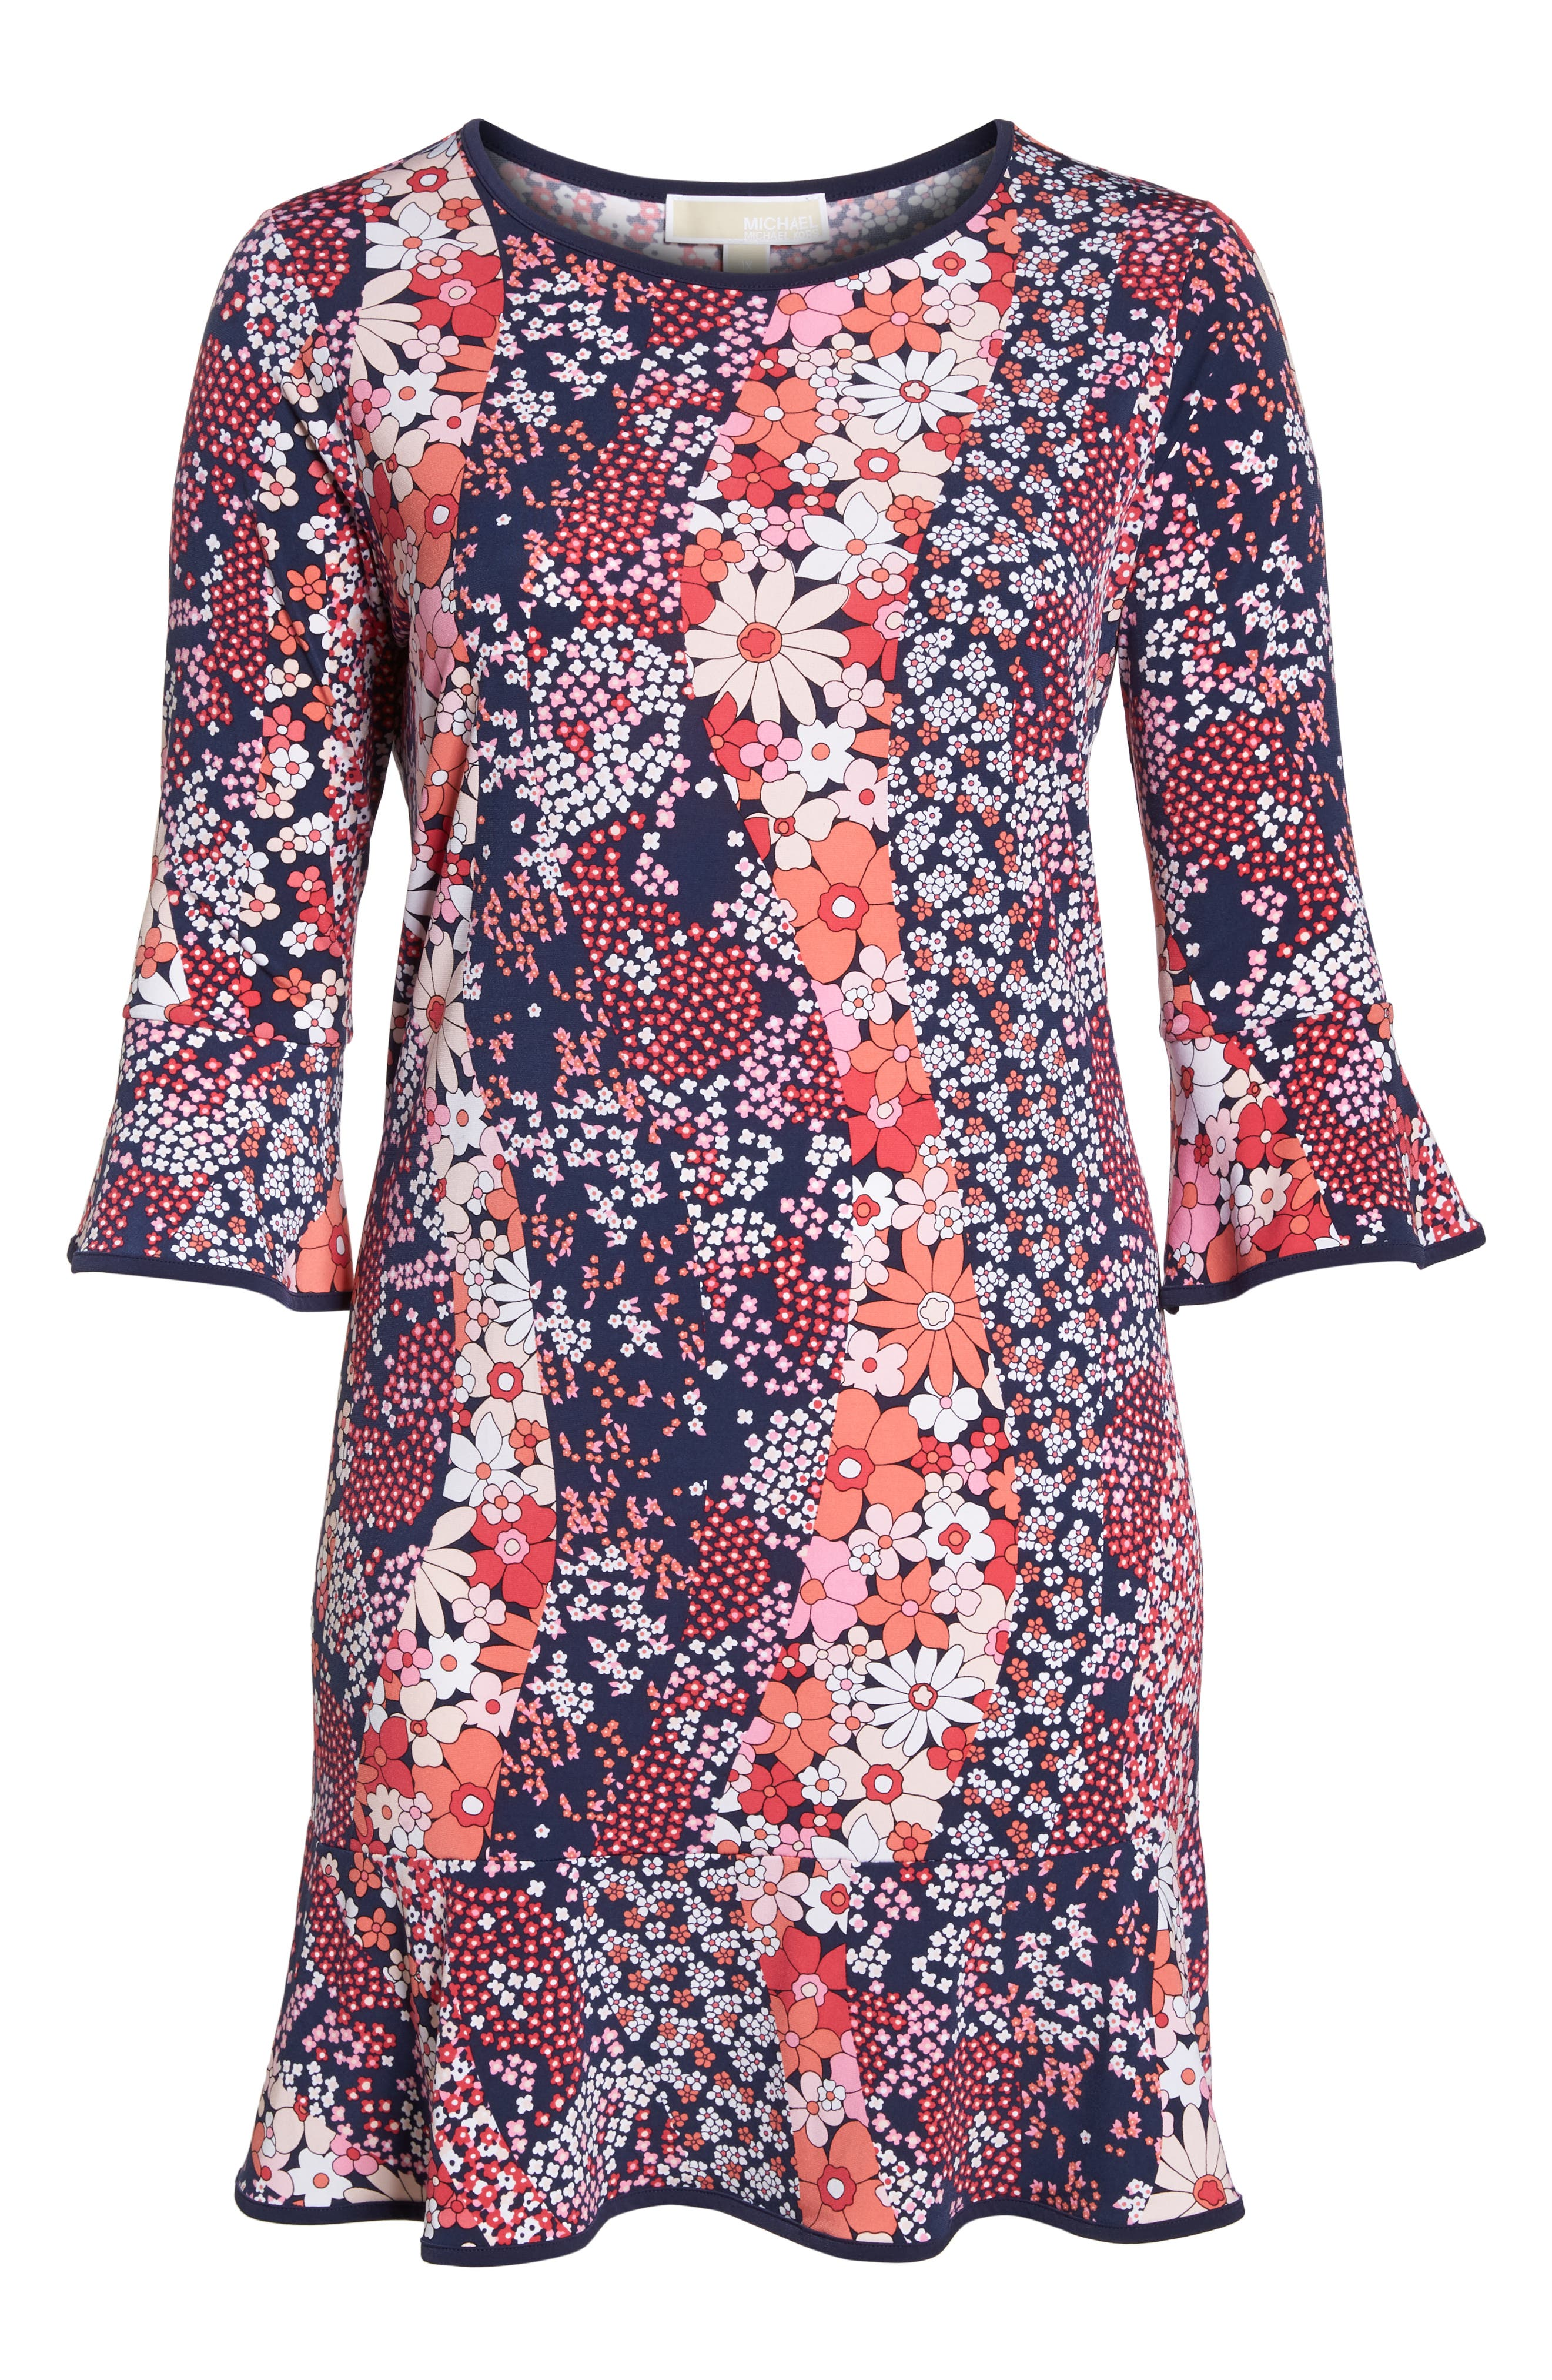 Patchwork Floral Bell Sleeve Shift Dress,                             Alternate thumbnail 7, color,                             True Navy/ Bright Blush